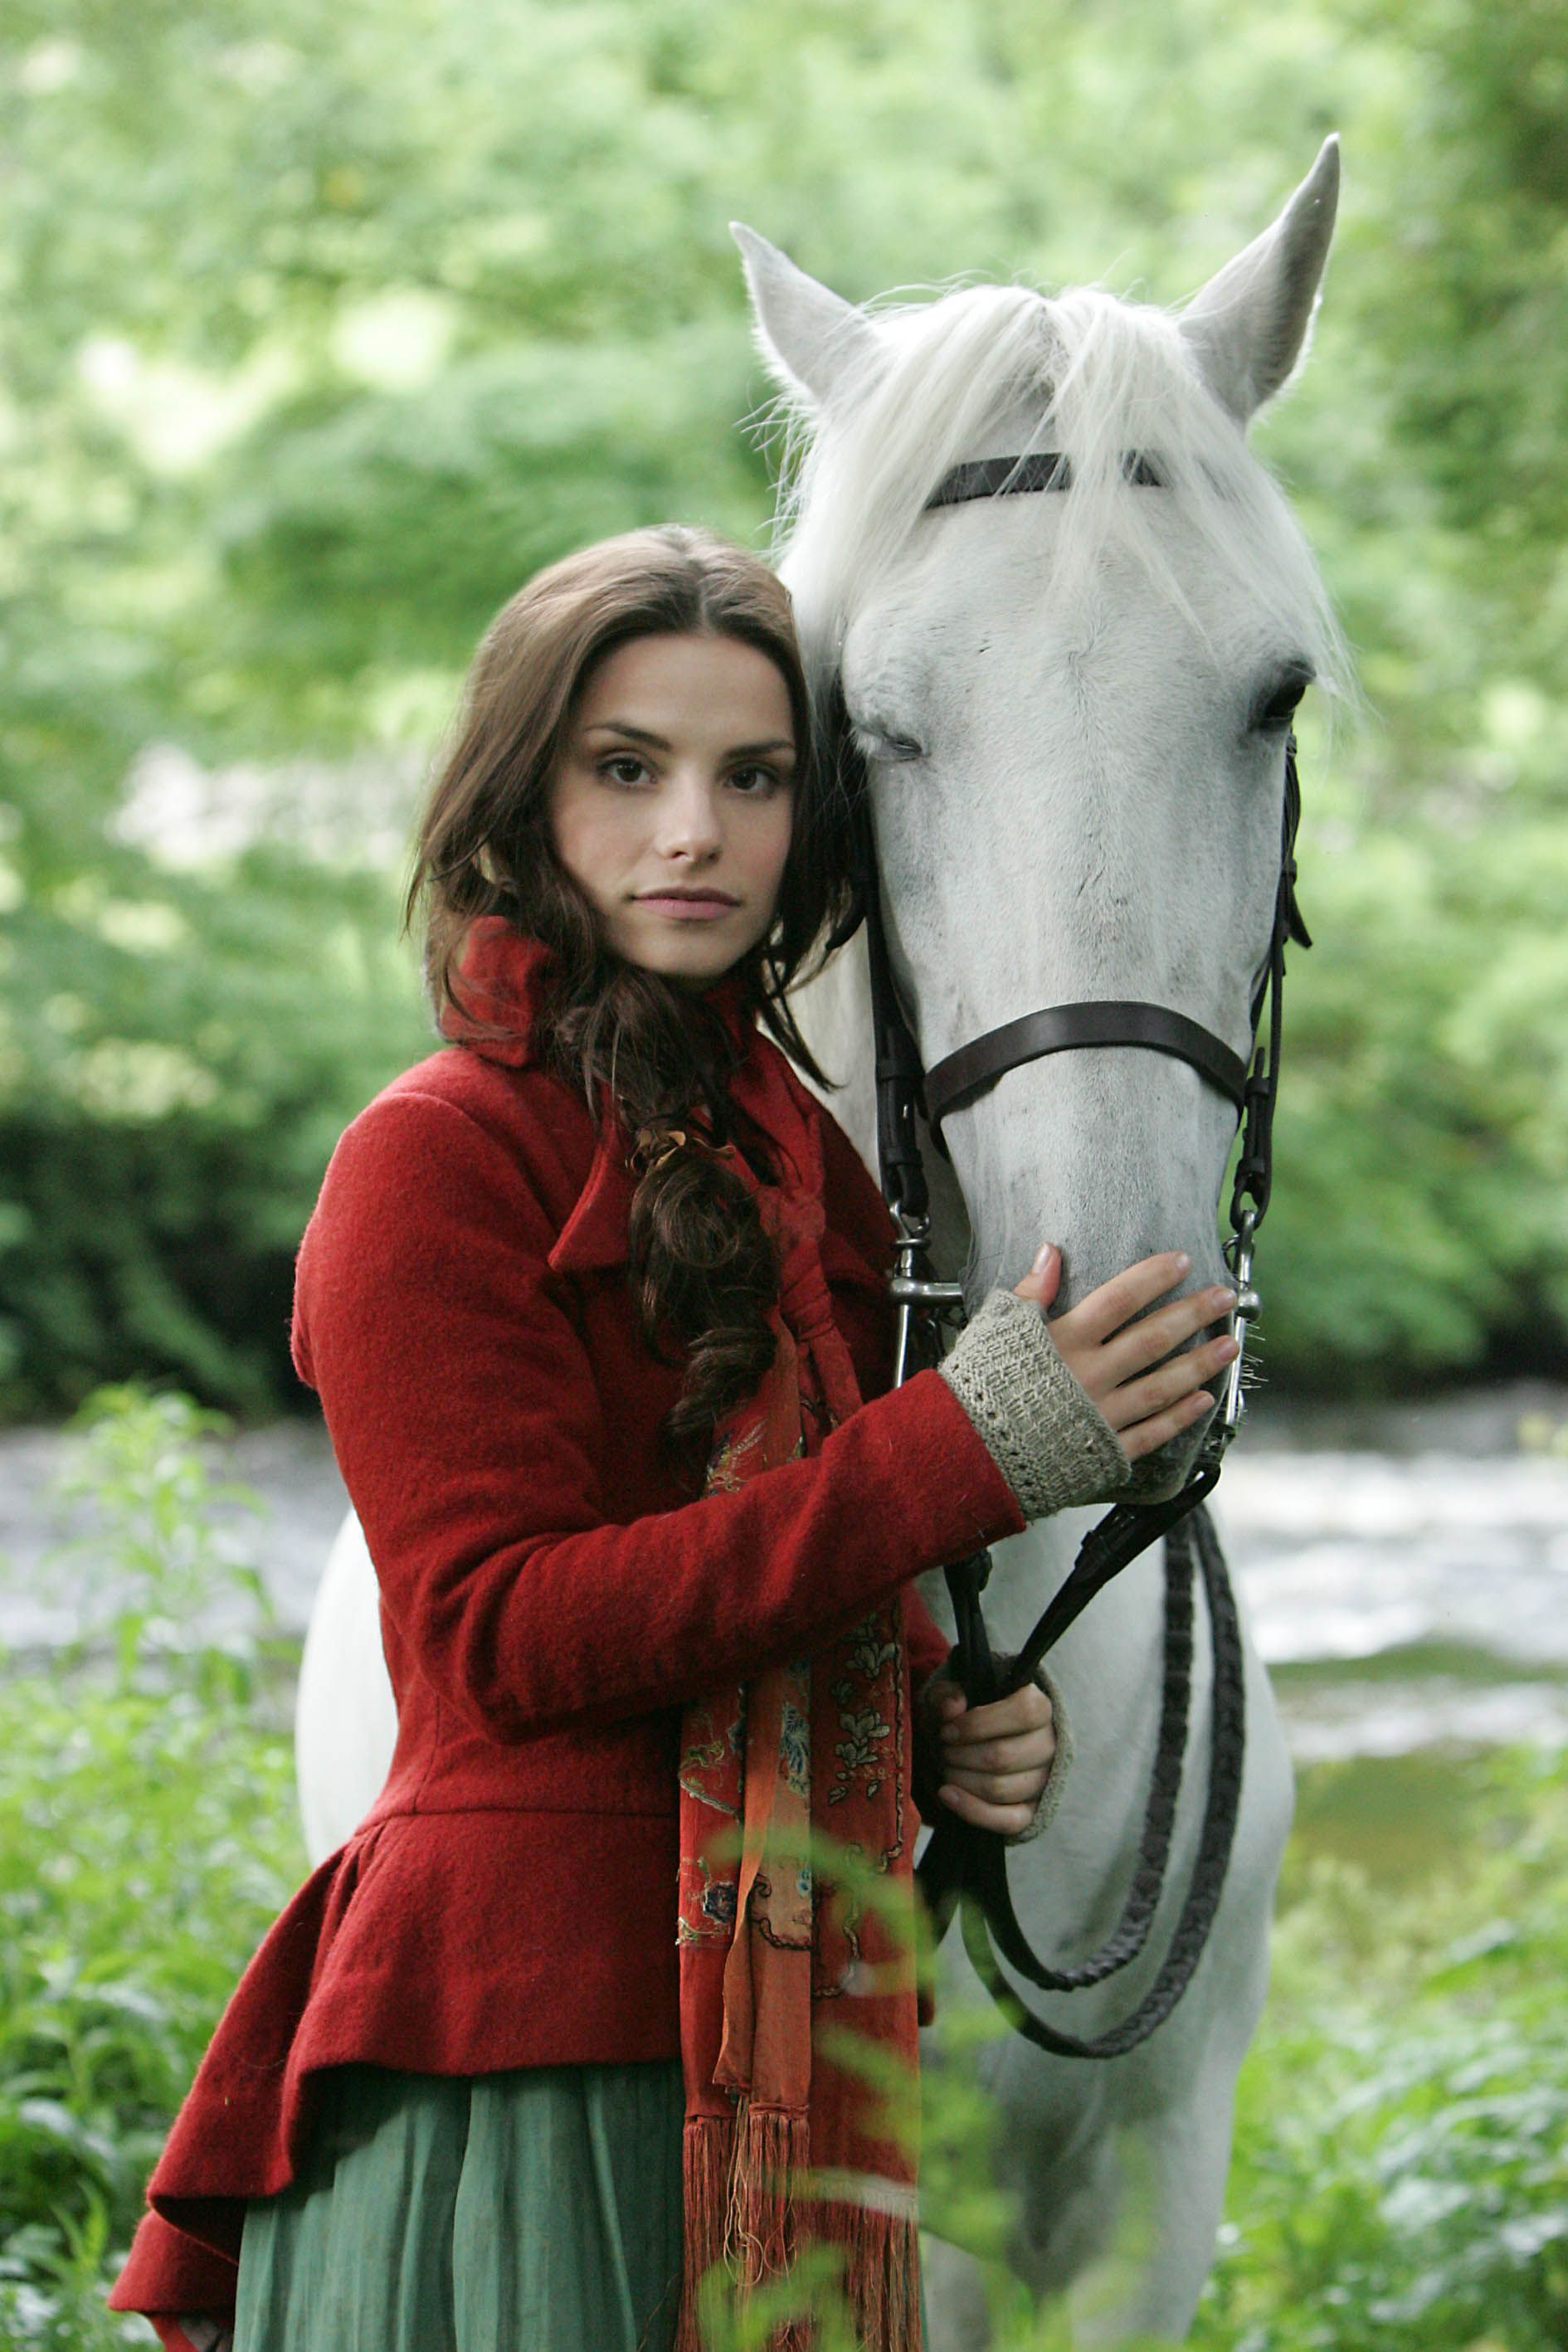 wuthering heights charlotte riley as catherine earnshaw  wuthering heights 2009 charlotte riley as catherine earnshaw